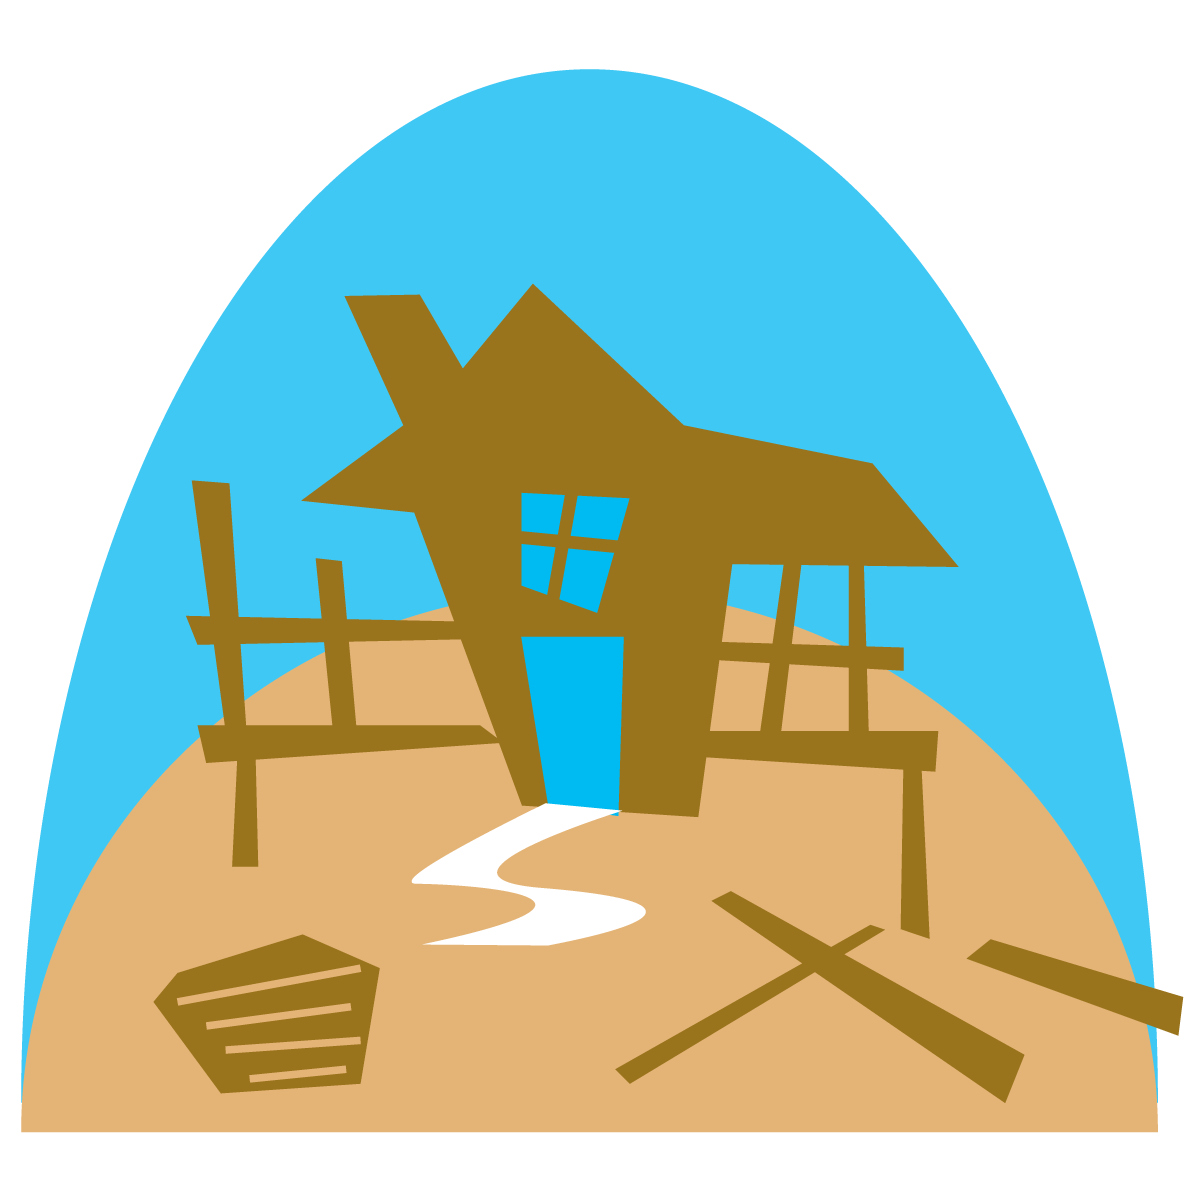 Donation clipart almsgiving. Construction project diary of